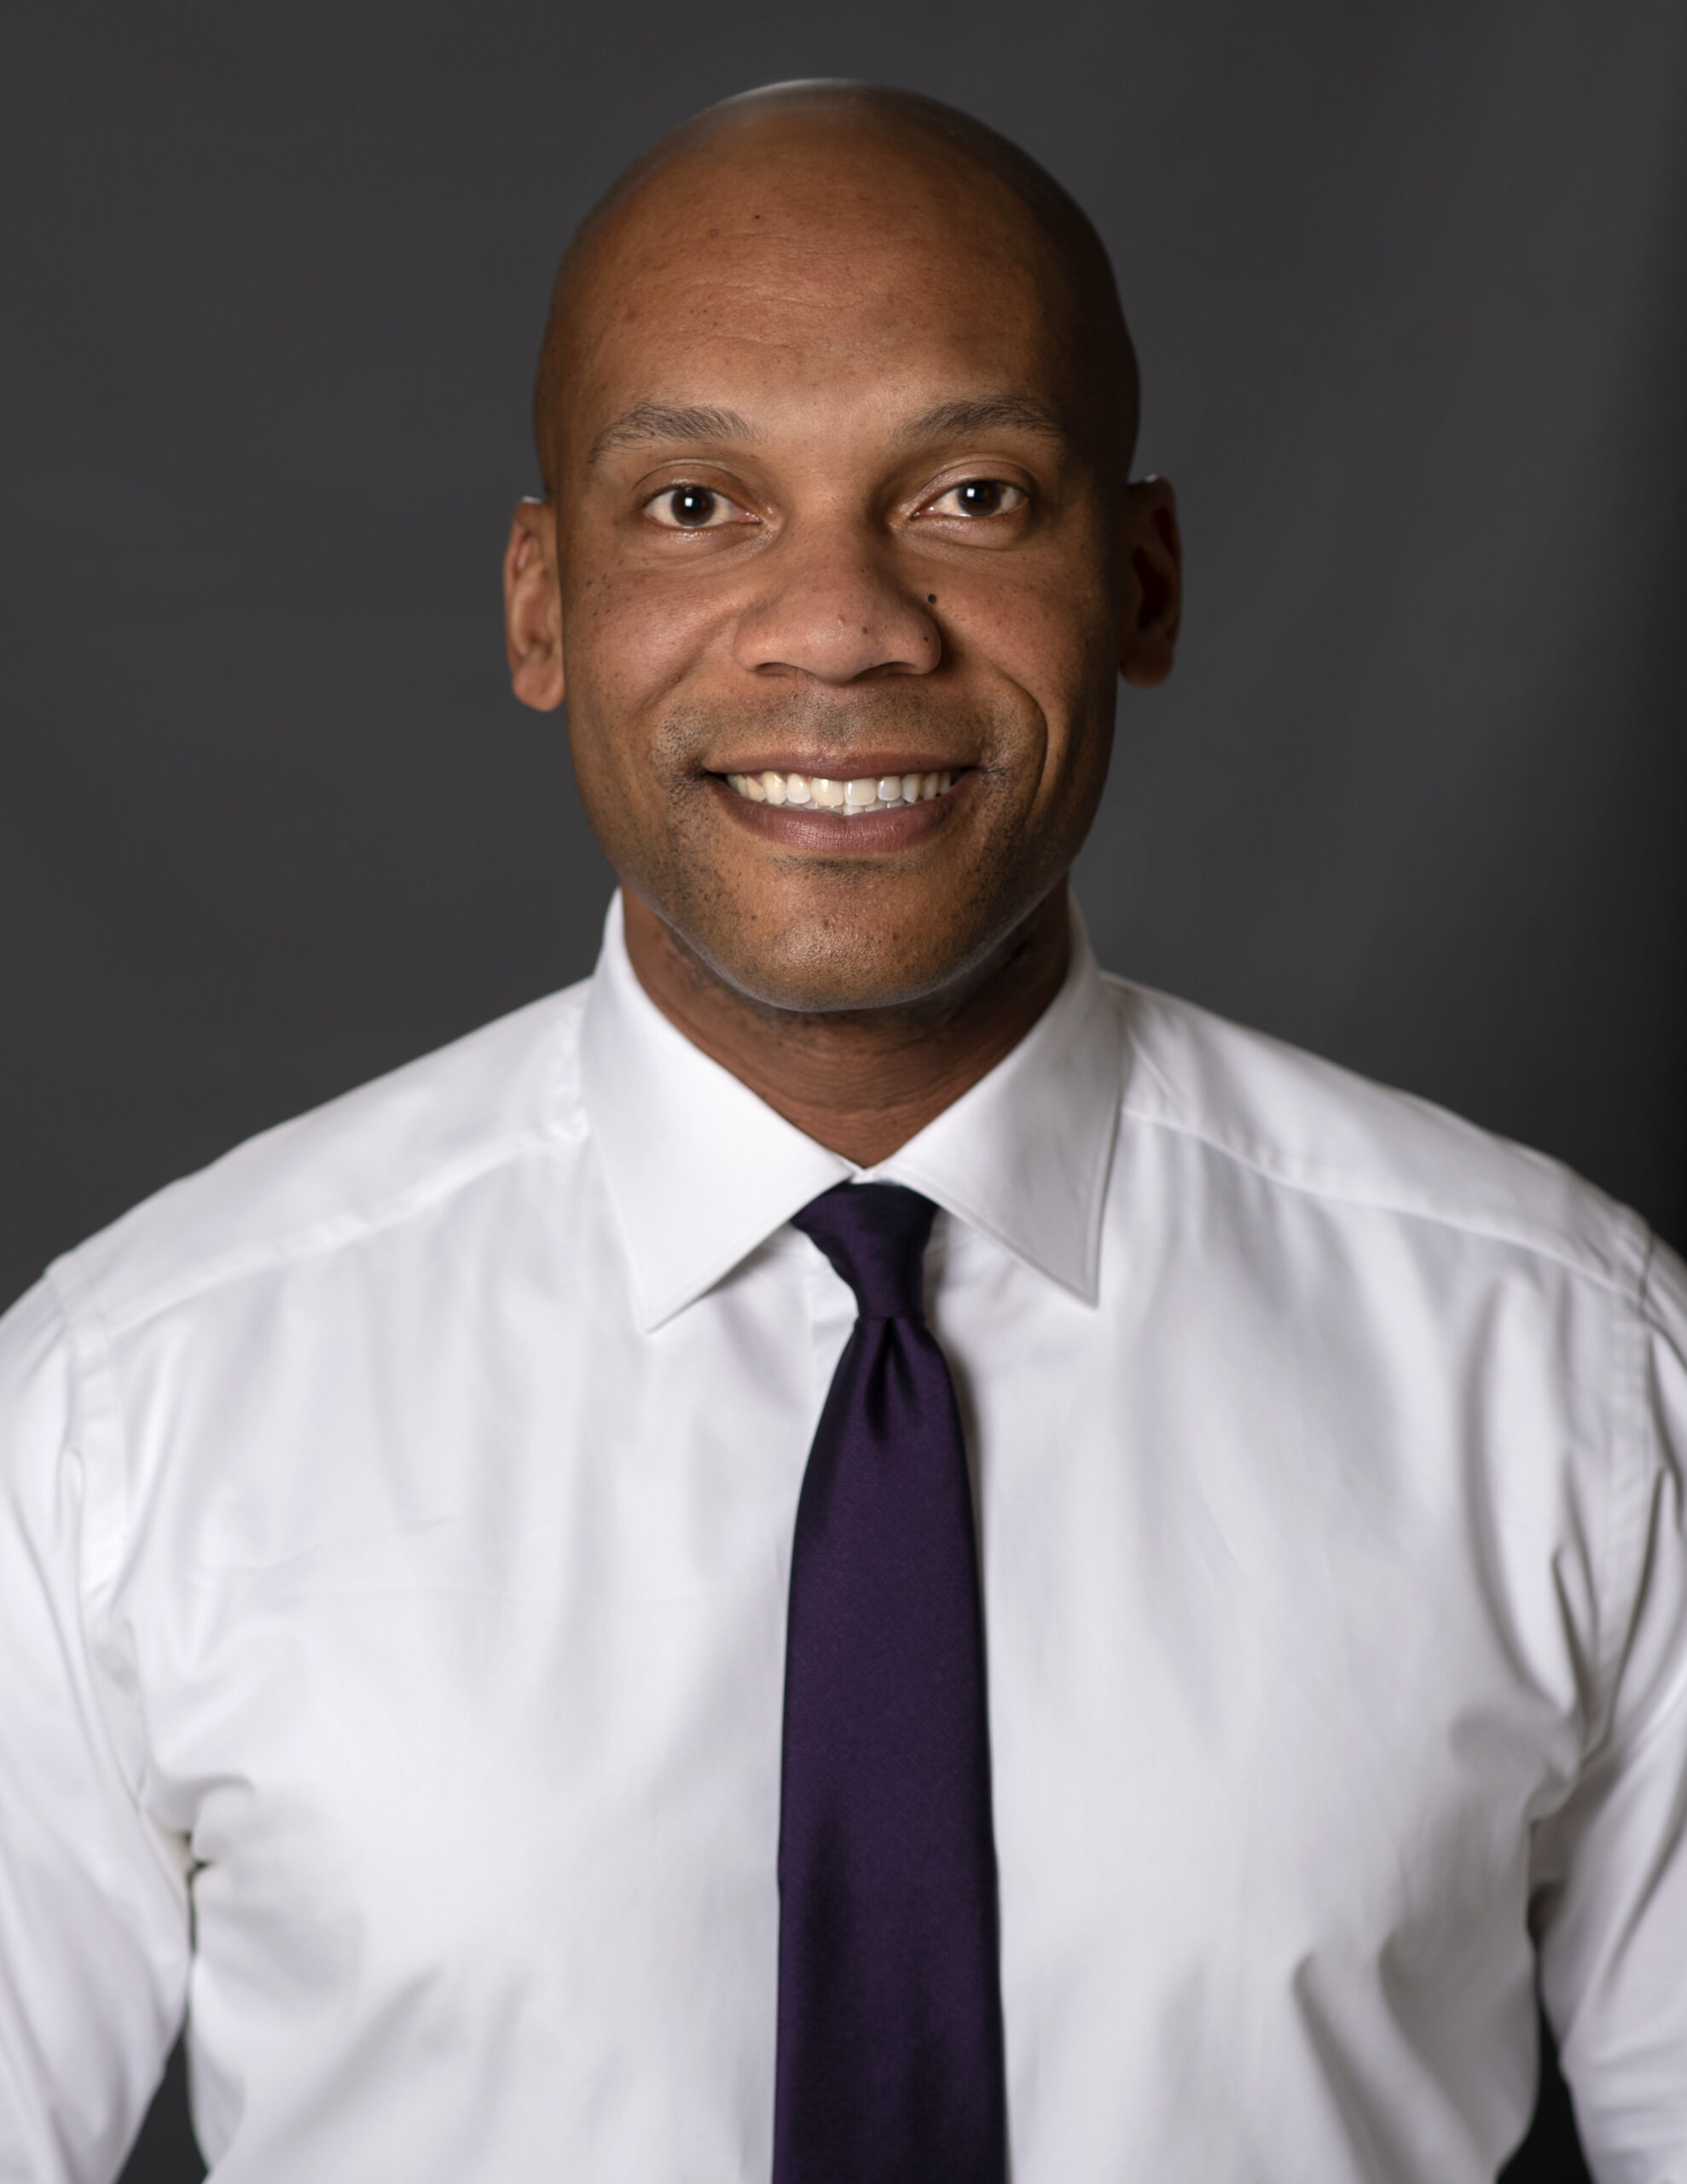 WCU Athletic Director Named